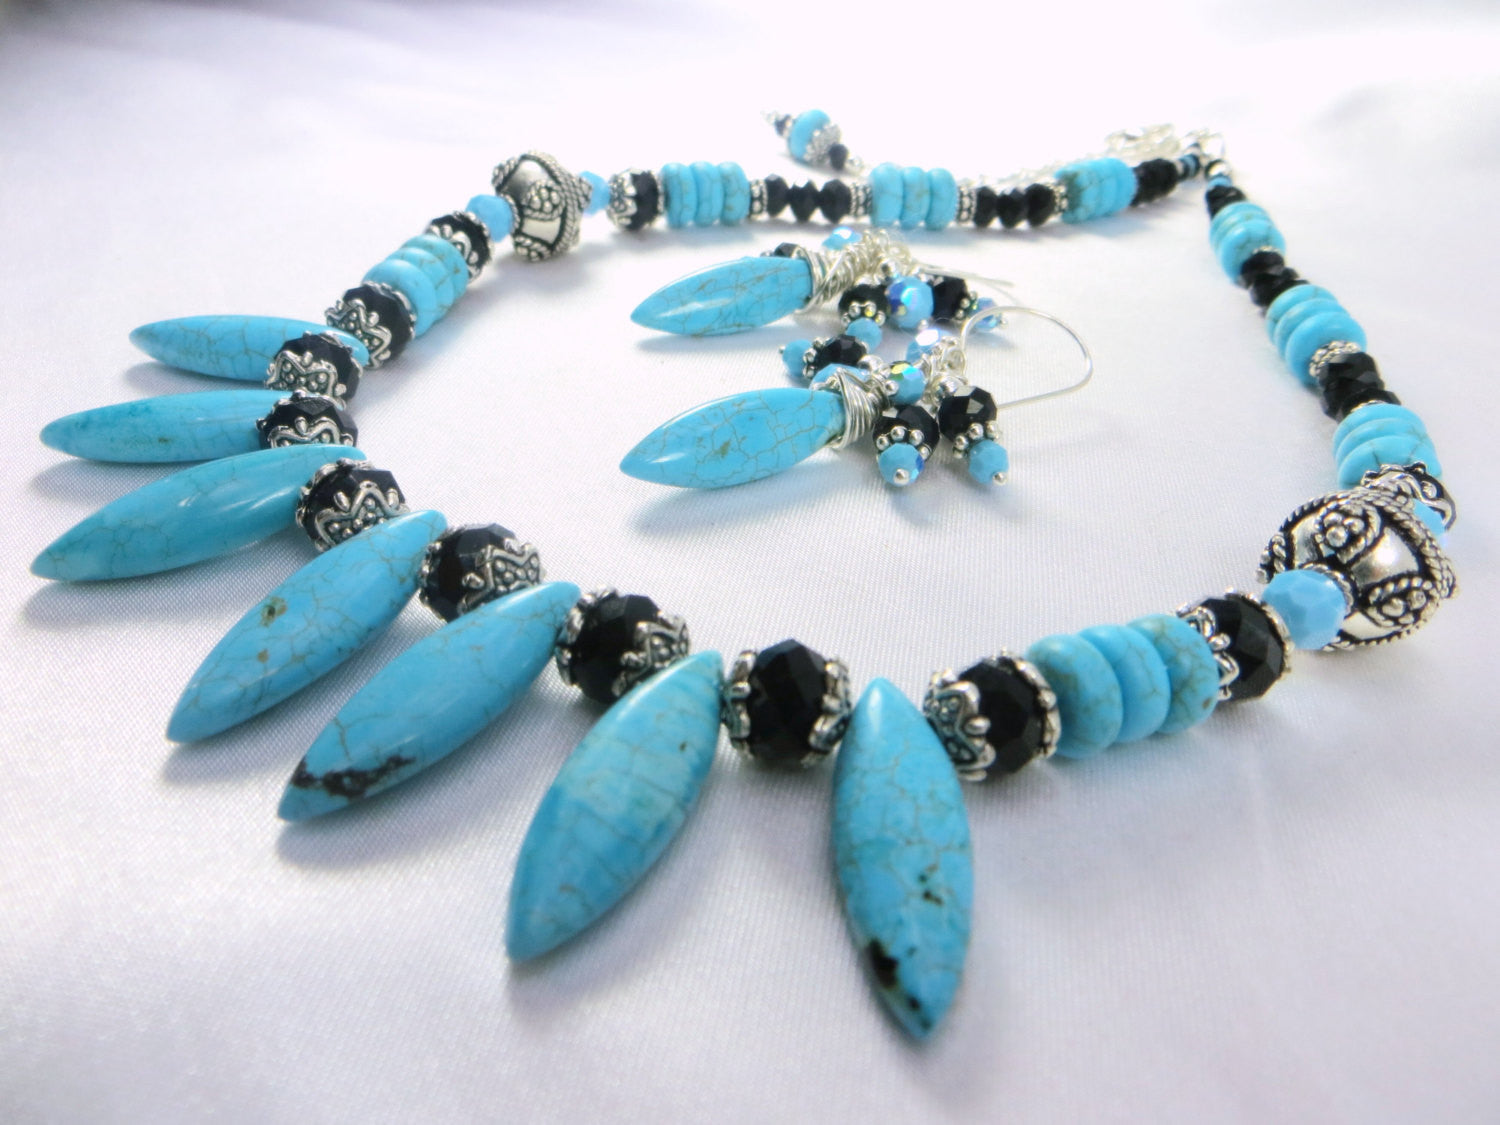 Chunky Spike Necklace in Blue Turquoise, Black and Silver - Odyssey Creations